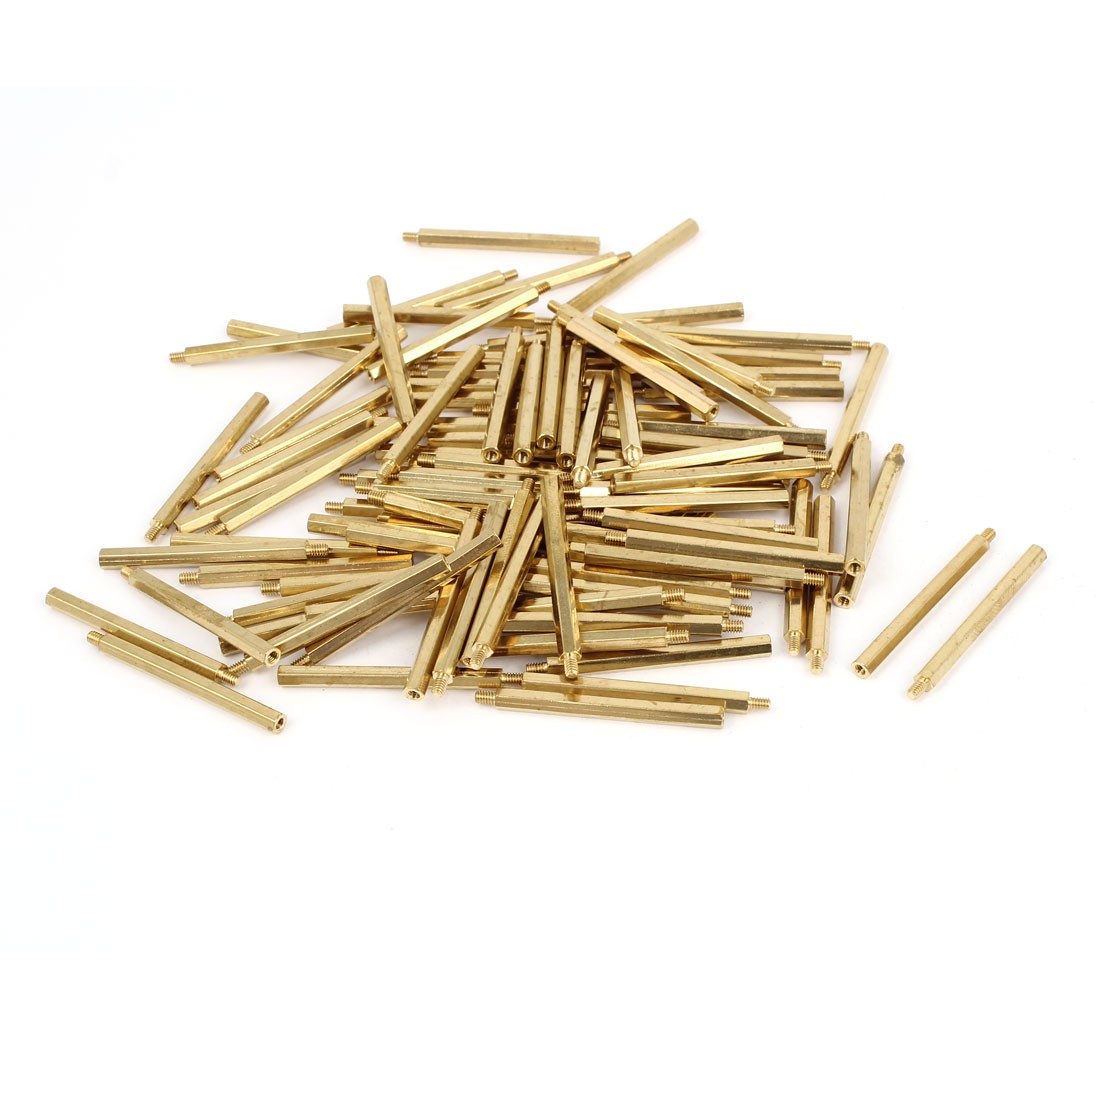 100 Pcs M2x32 Copper Column Male Hexagon Stand-off Spacers 3mm Thread Length